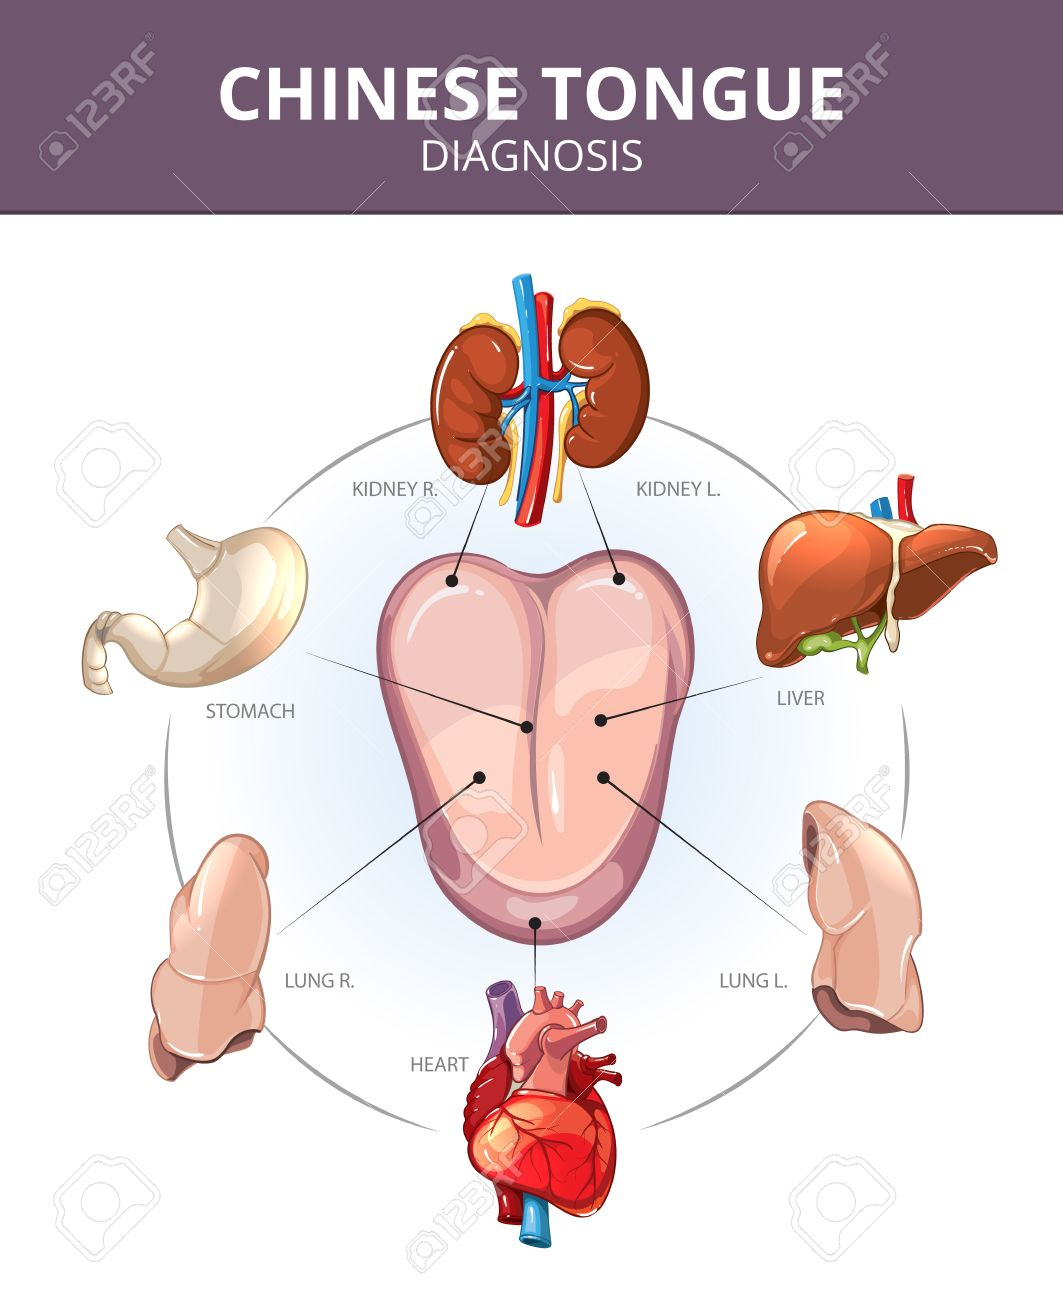 Chinese Tongue Diagnosis Internal Organs Projections Stomach